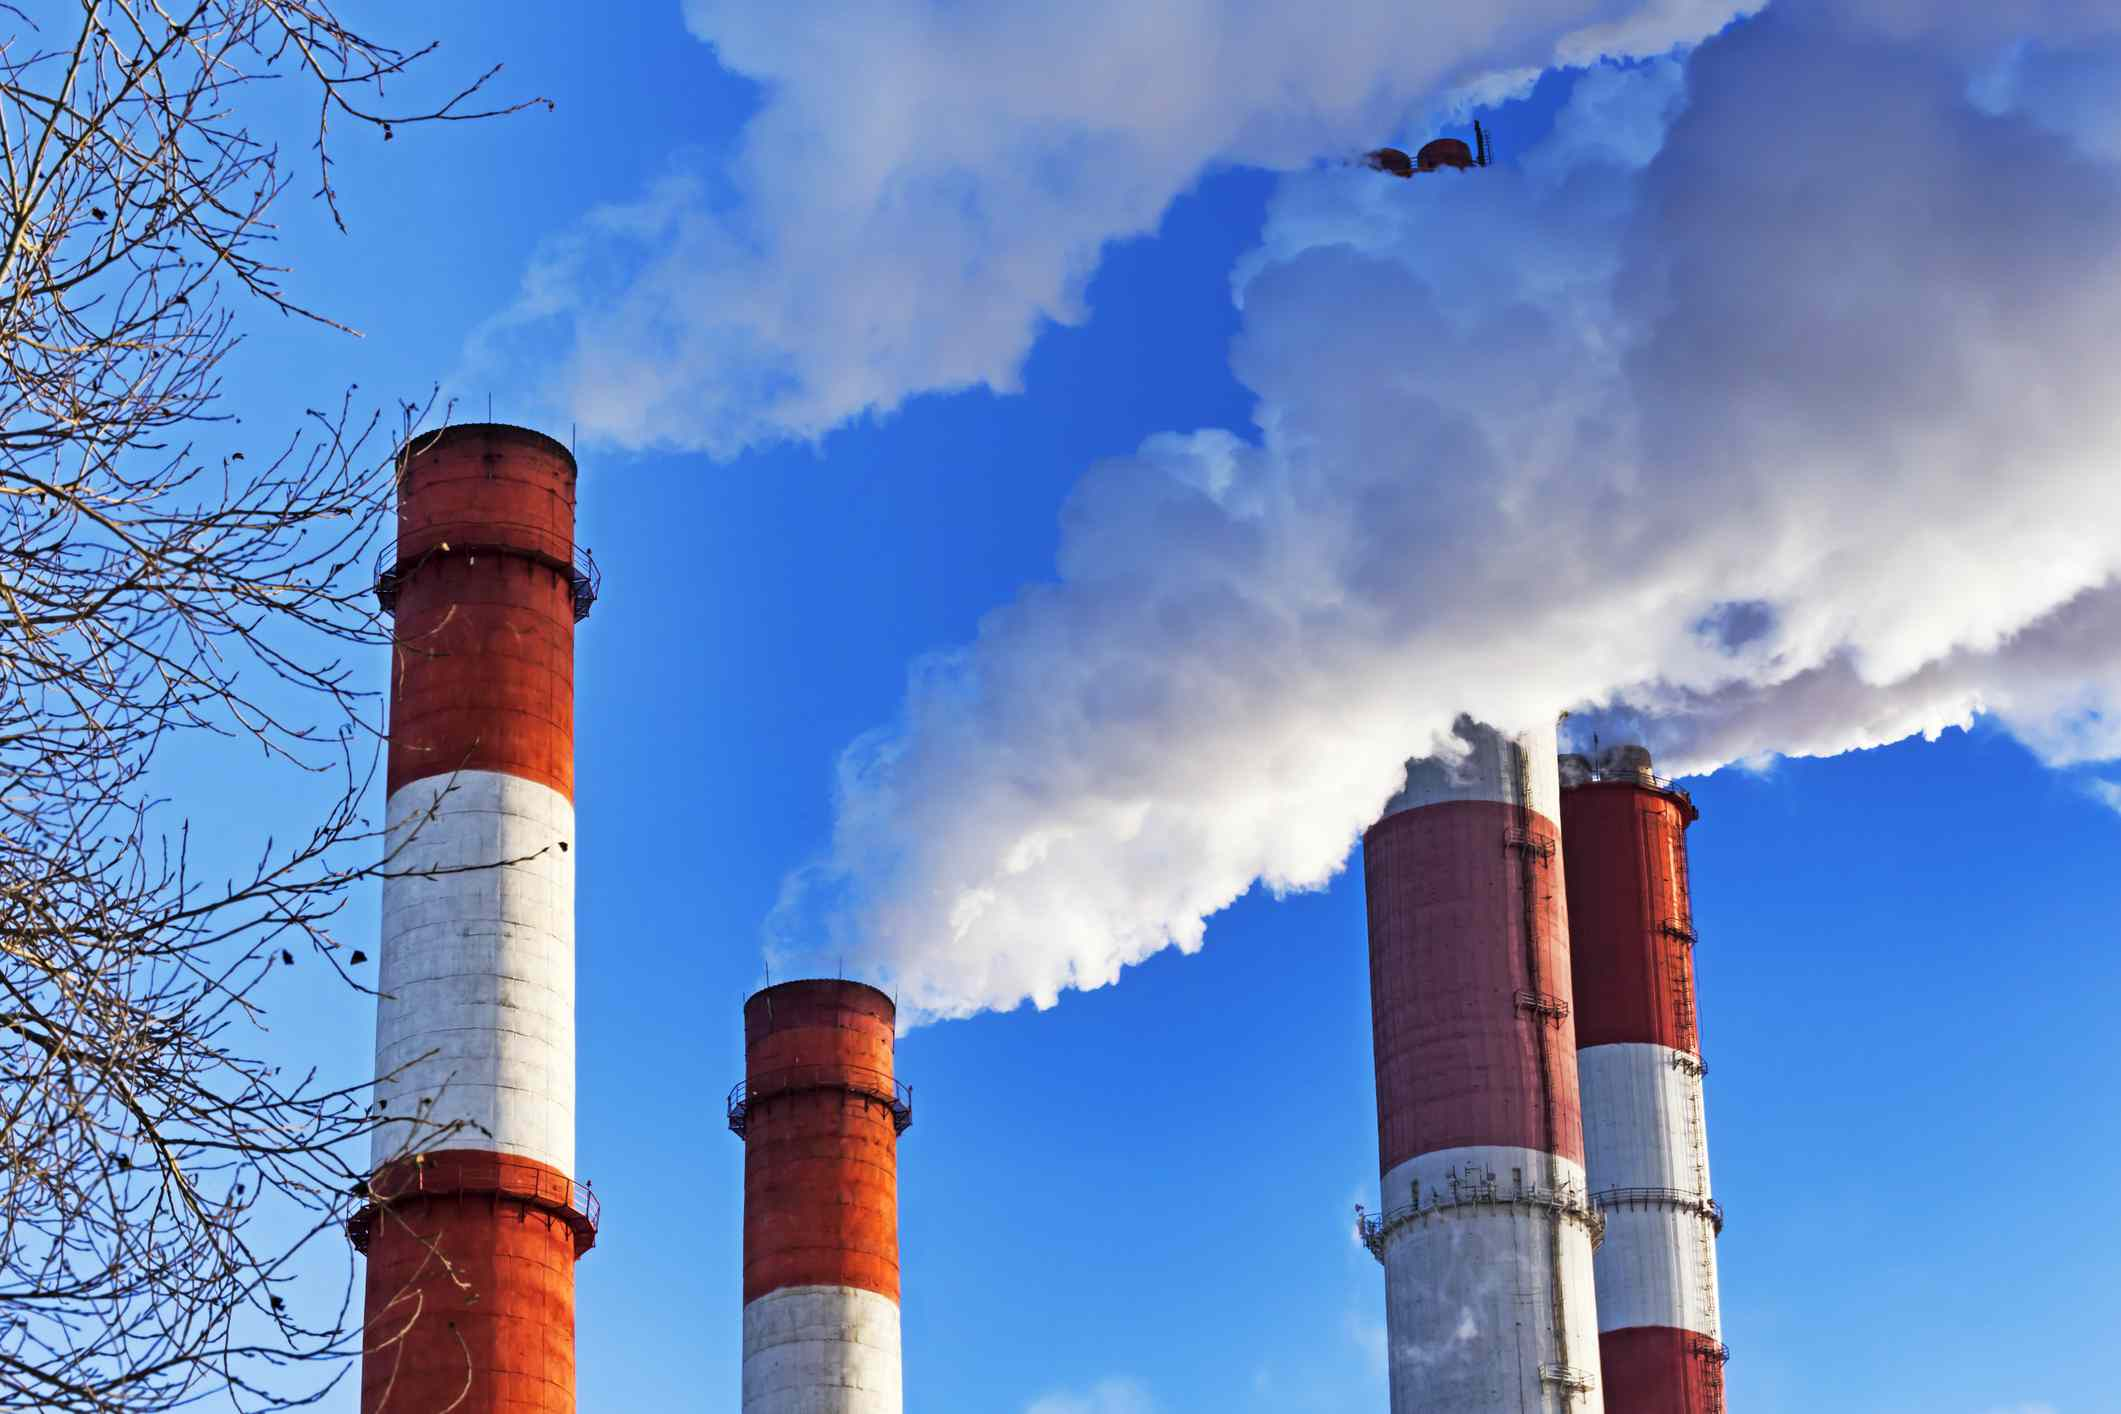 Chimneys with steam production of a thermal power station